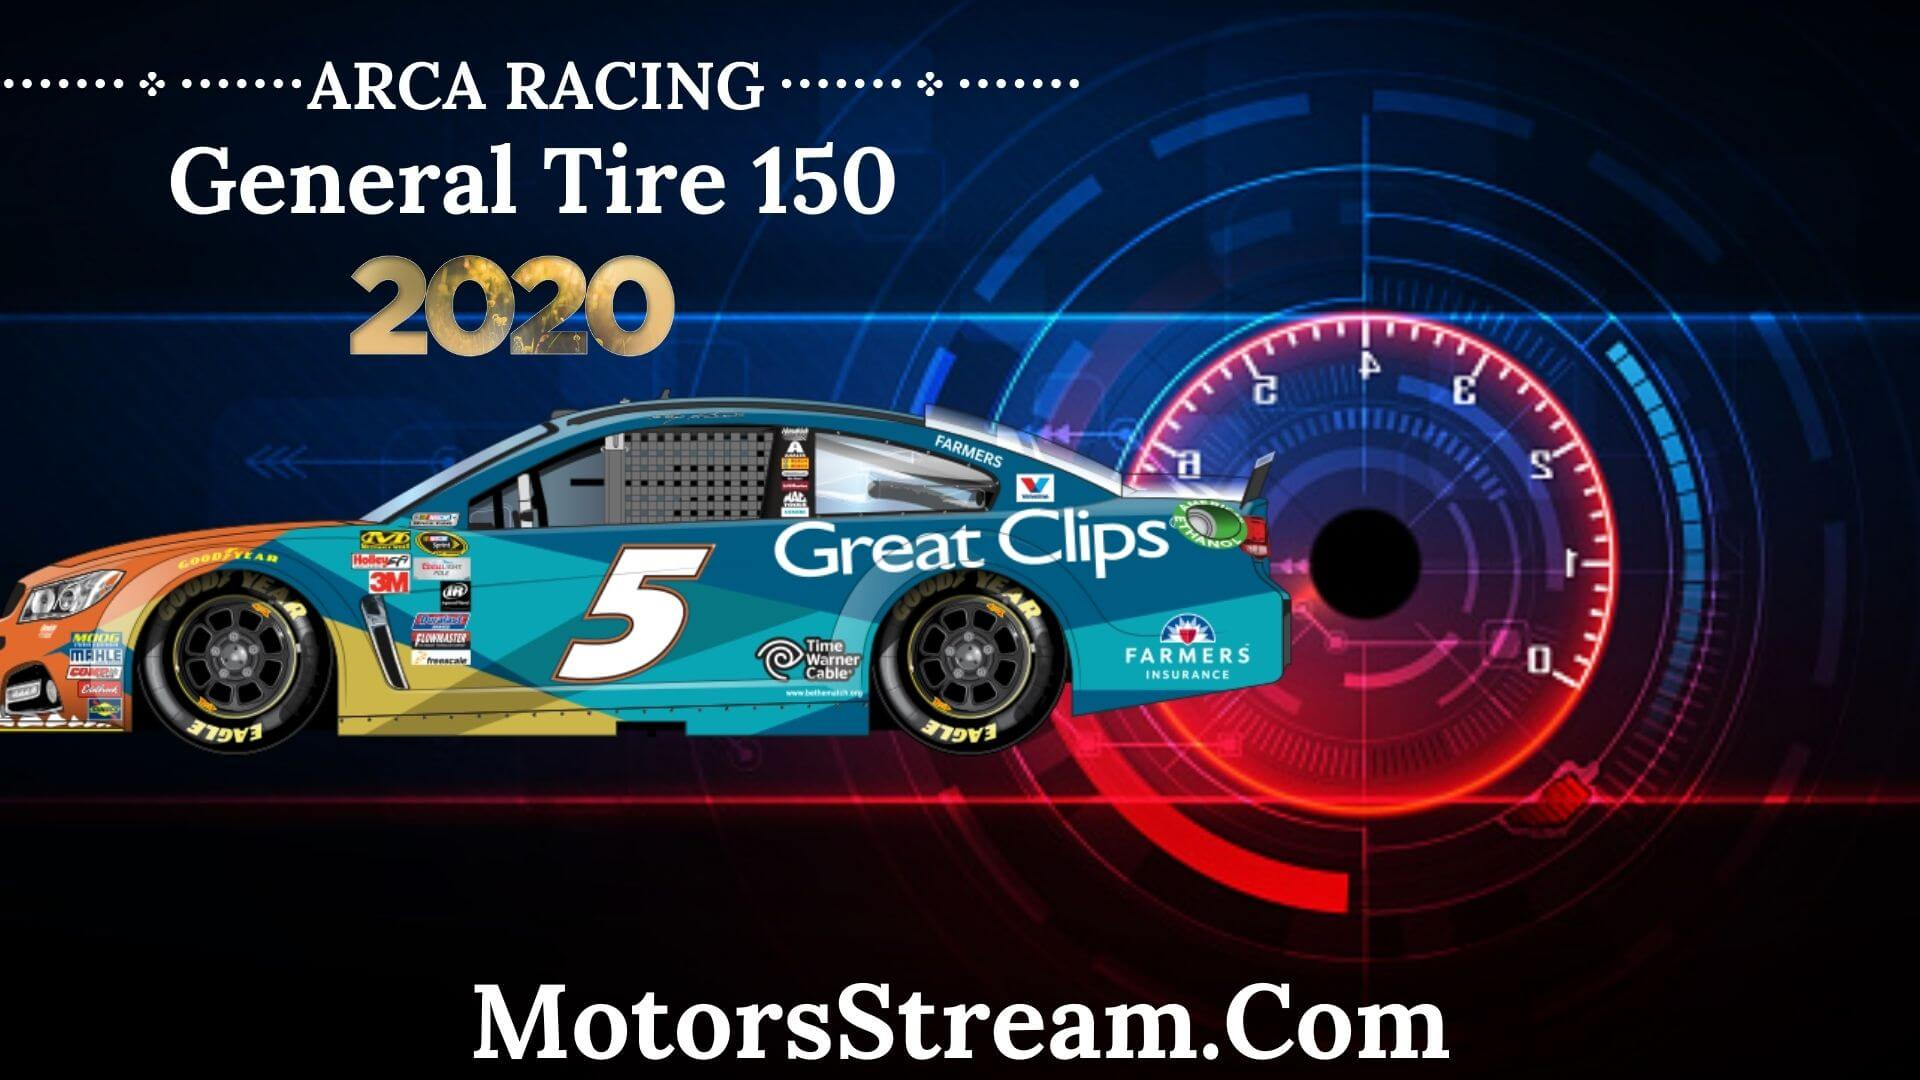 How To Watch General Tire 150 ARCA Live Stream